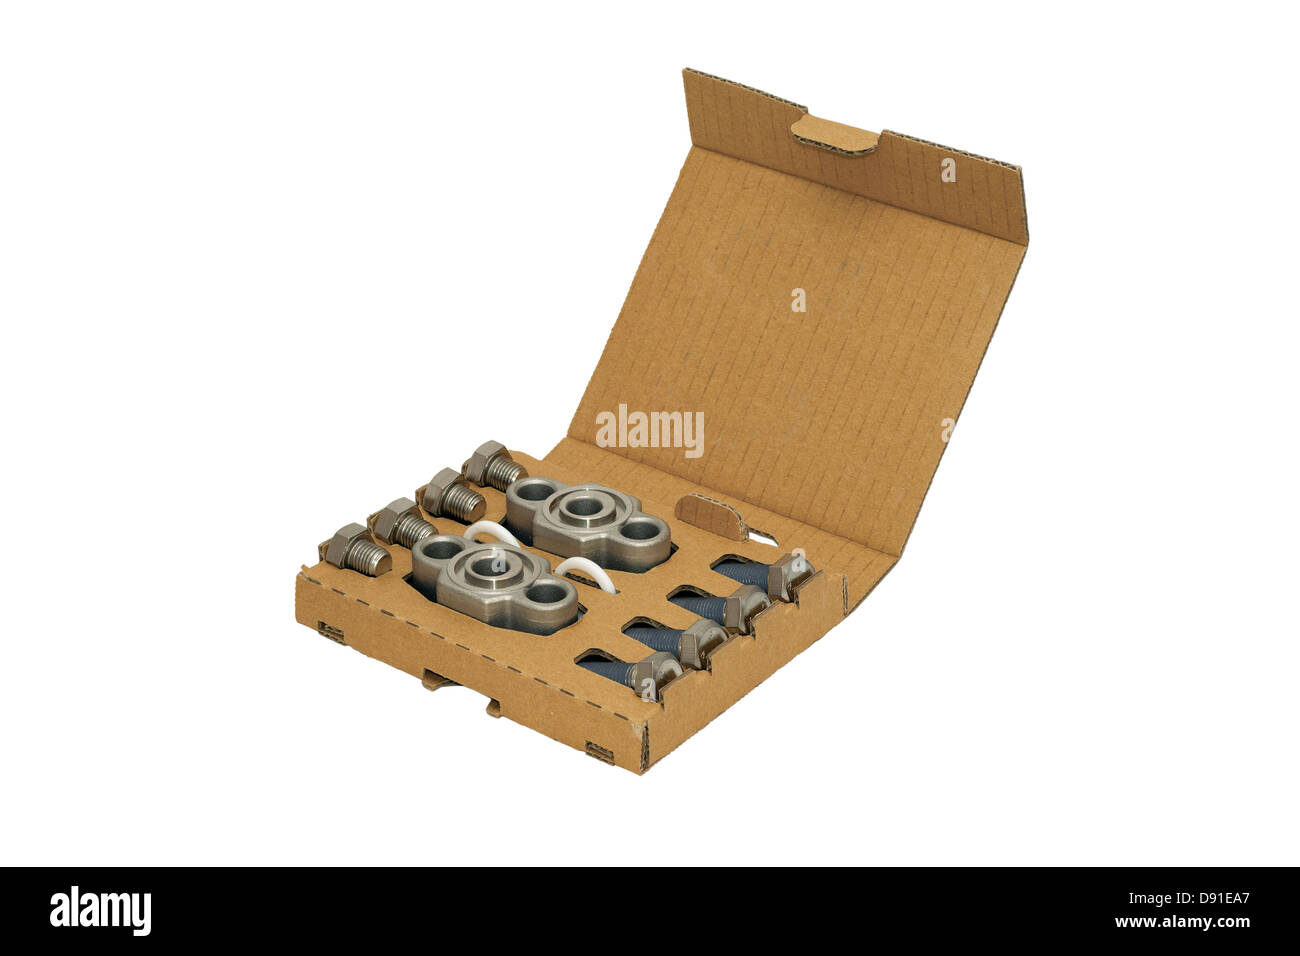 cardboard, box, packaging, white, isolated, object, product, container, opened, carton, element, bolt, screw, metal, - Stock Image